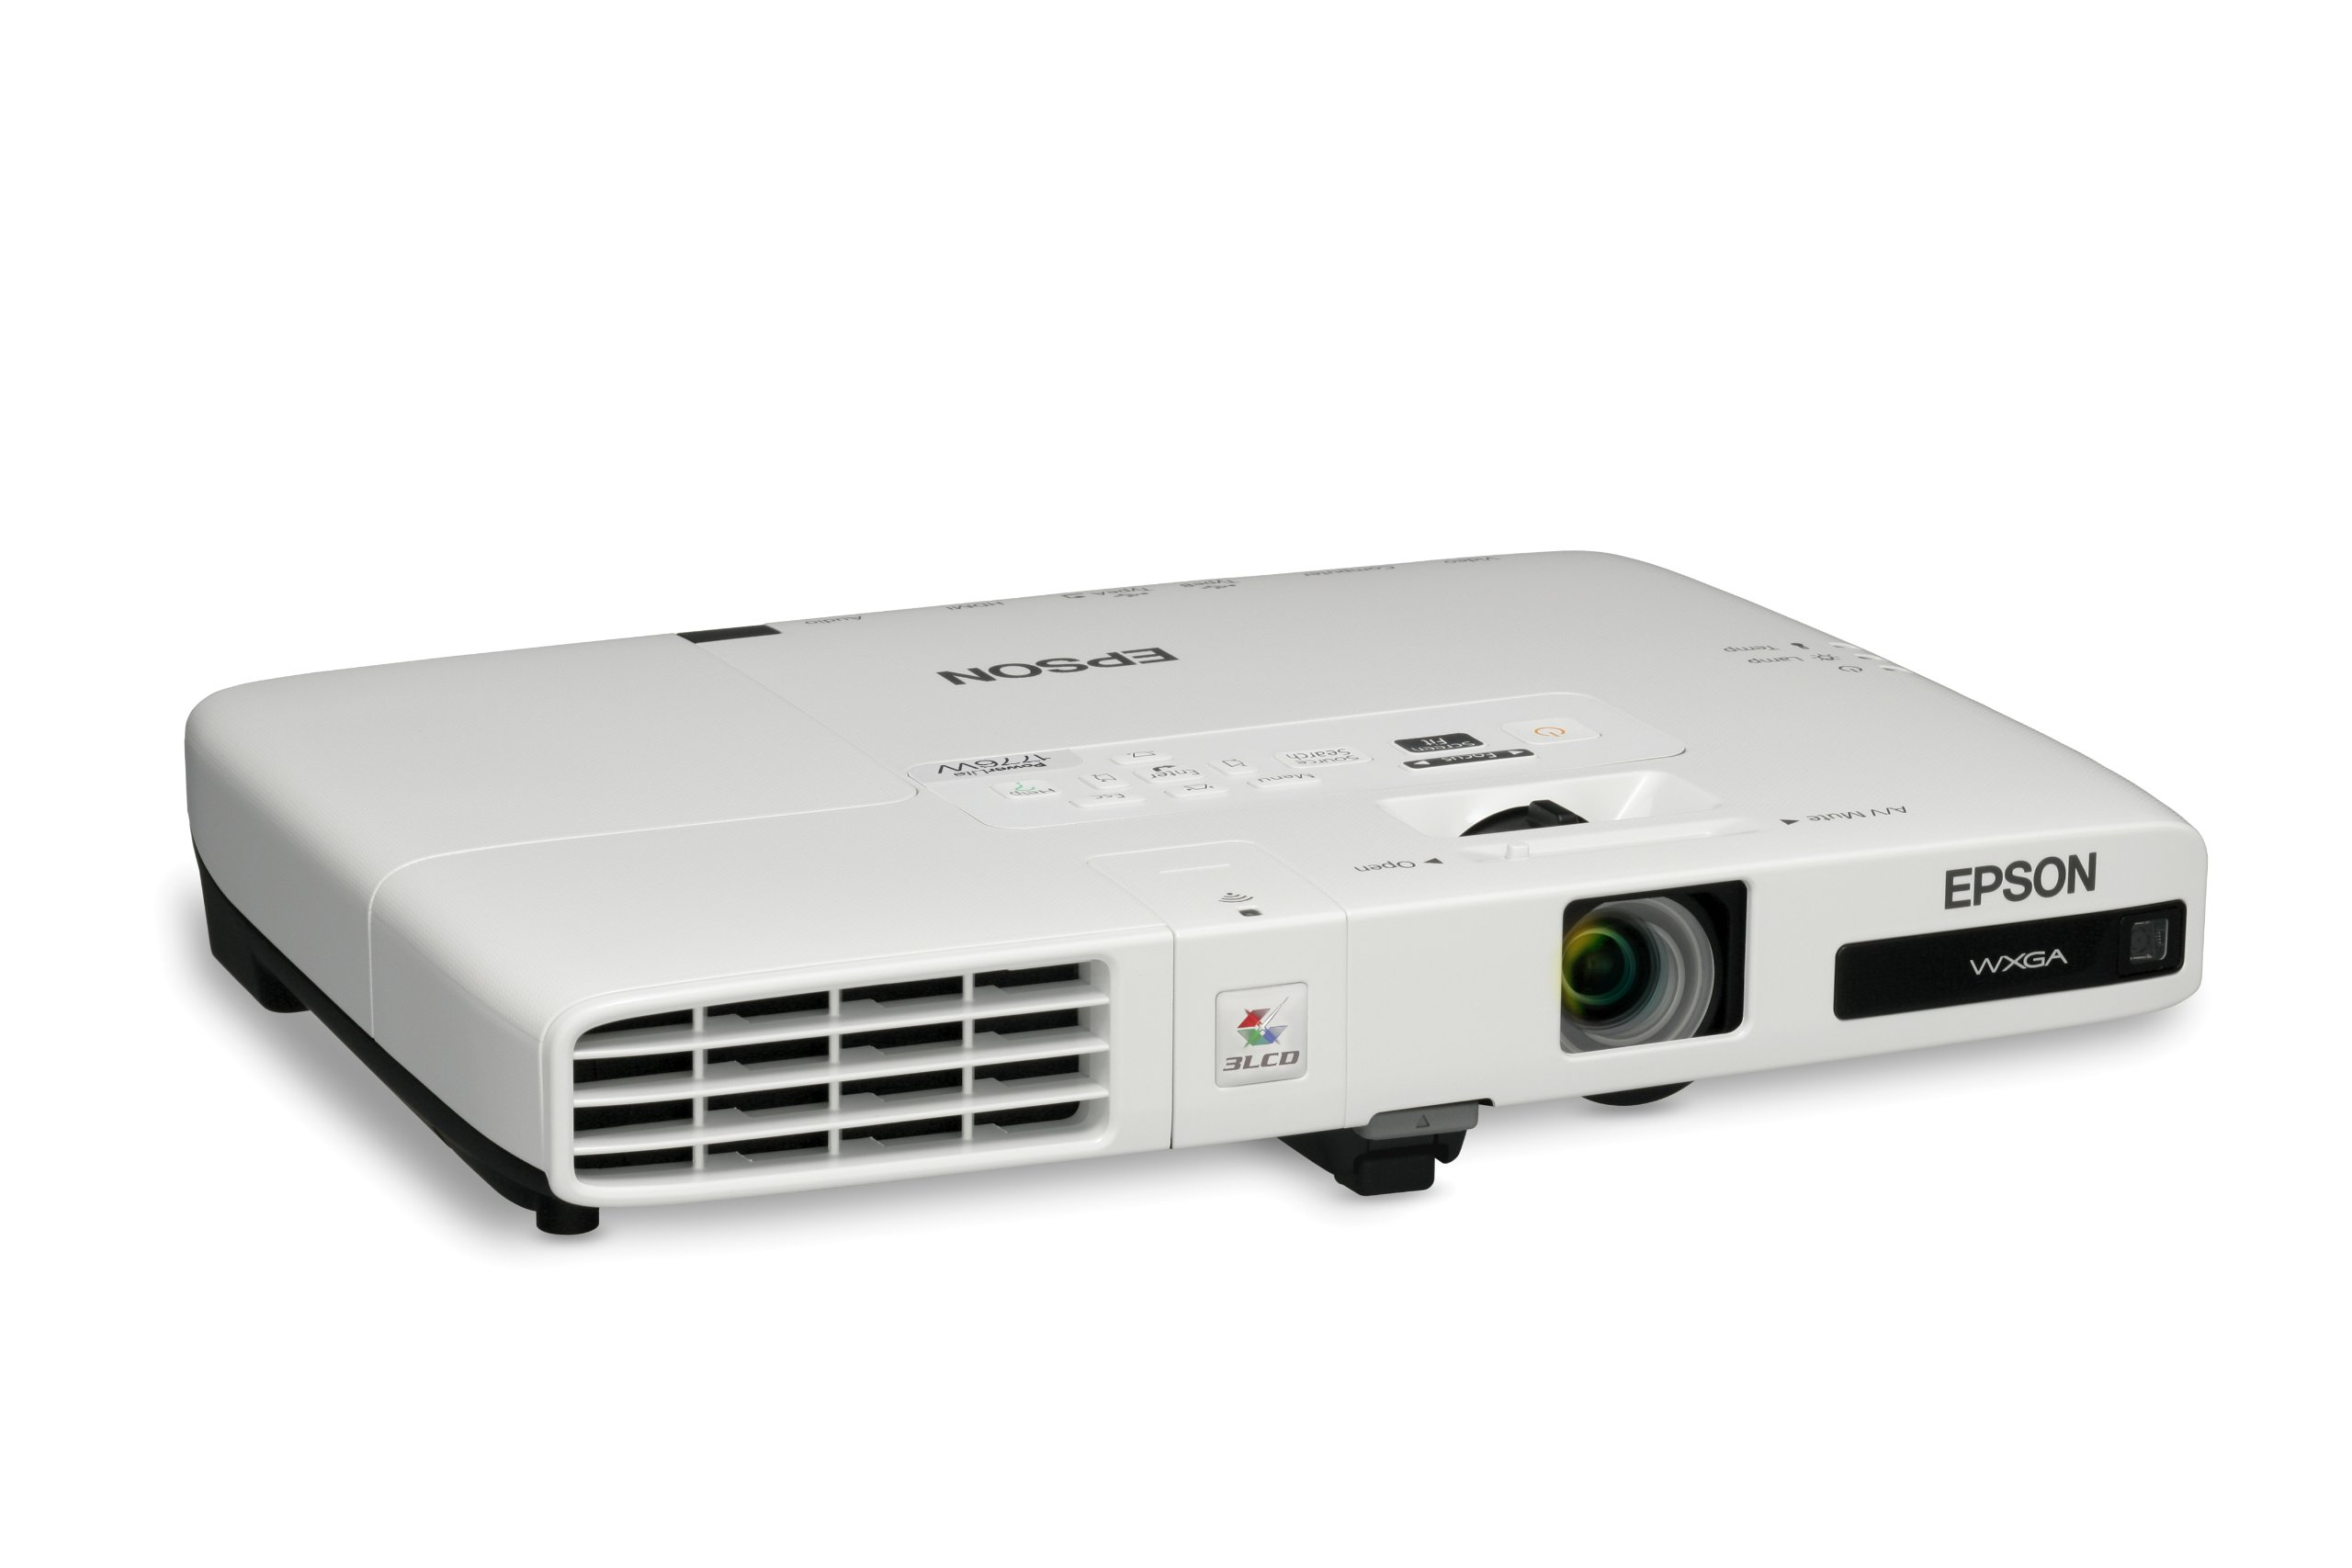 Epson PowerLite 1776W Widescreen Business Projector (WXGA Resolution 1280x800) (V11H476020) by Epson